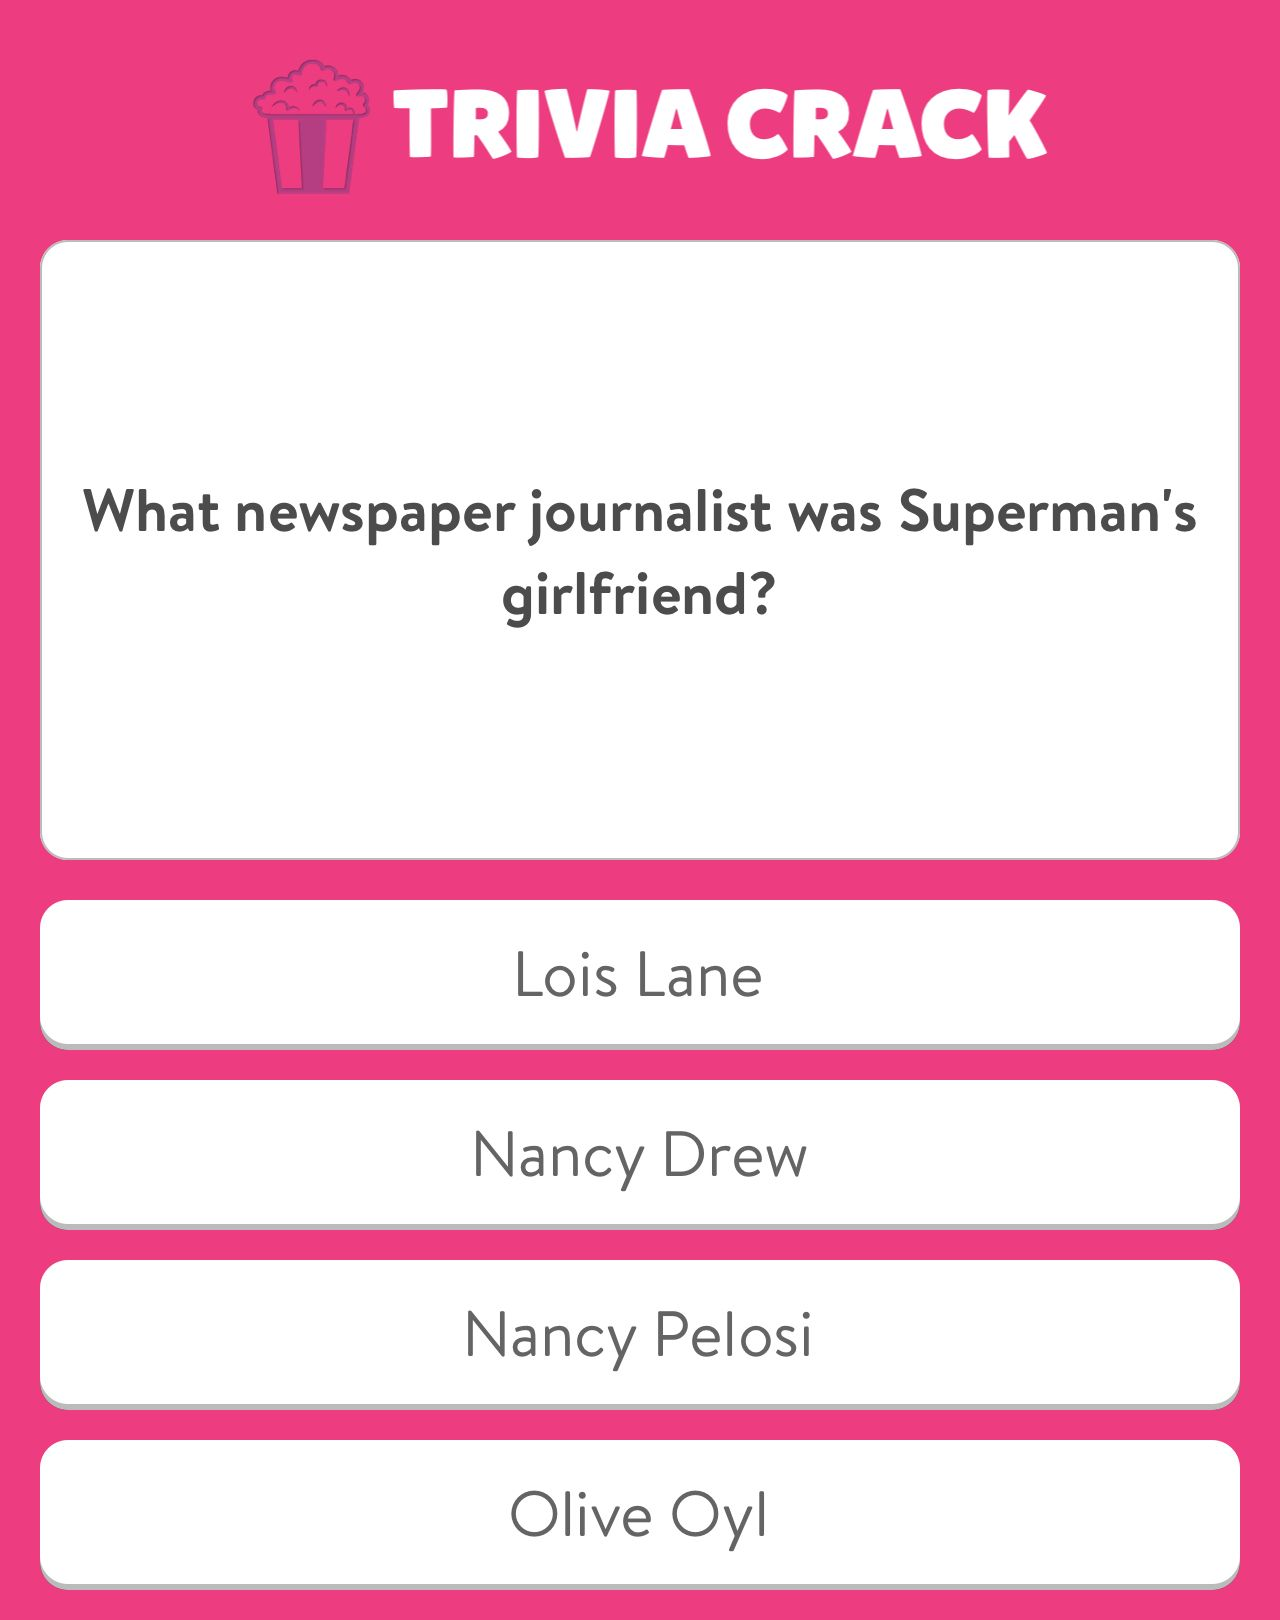 I just answered this question on Trivia Crack FUNNY PICS